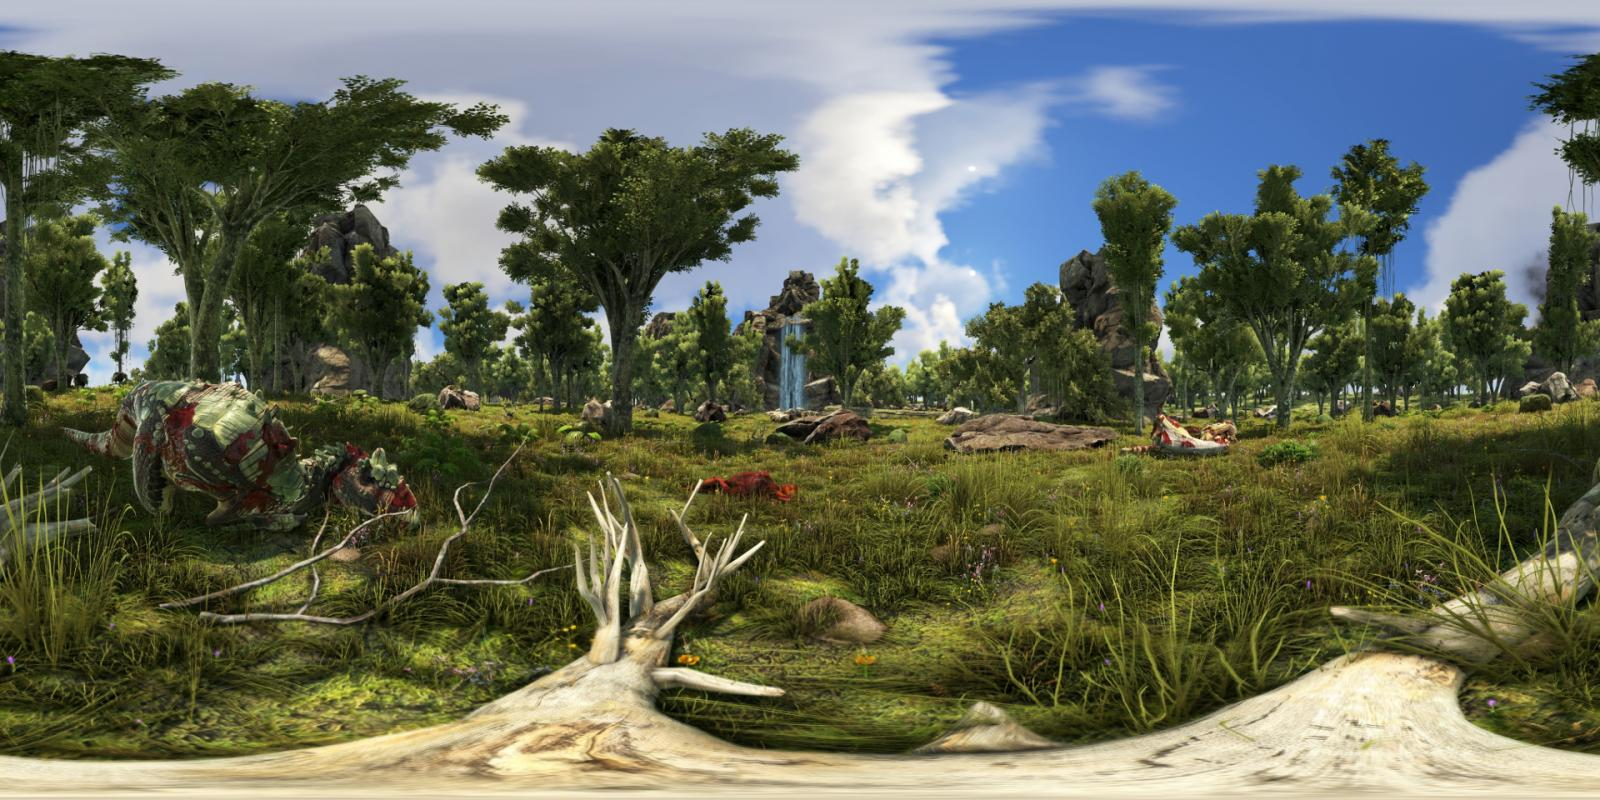 large.593b7d7b92768_FataL1ty-FieldofSlaughter-Panoramic360Stereoscopic3D.jpg